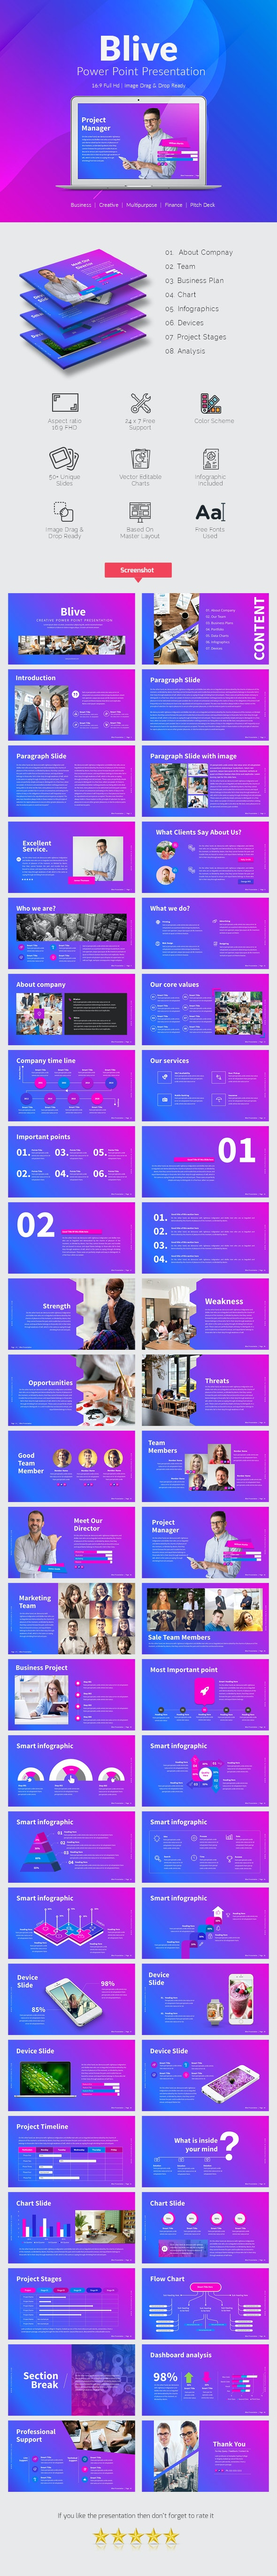 Blive Power Point Presentation Template - Business PowerPoint Templates